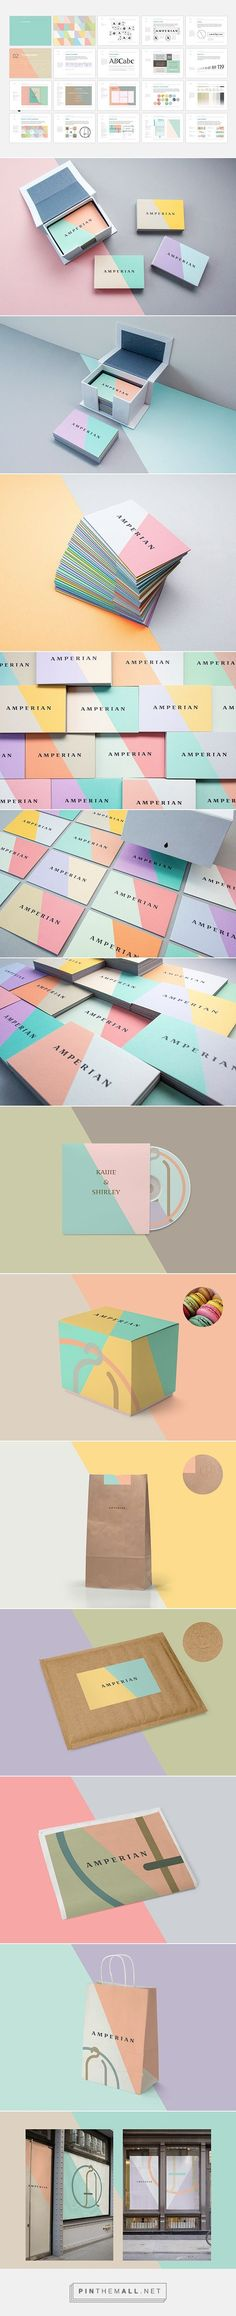 Color blocking #stationery design. Love the business cards and packaging especially.: